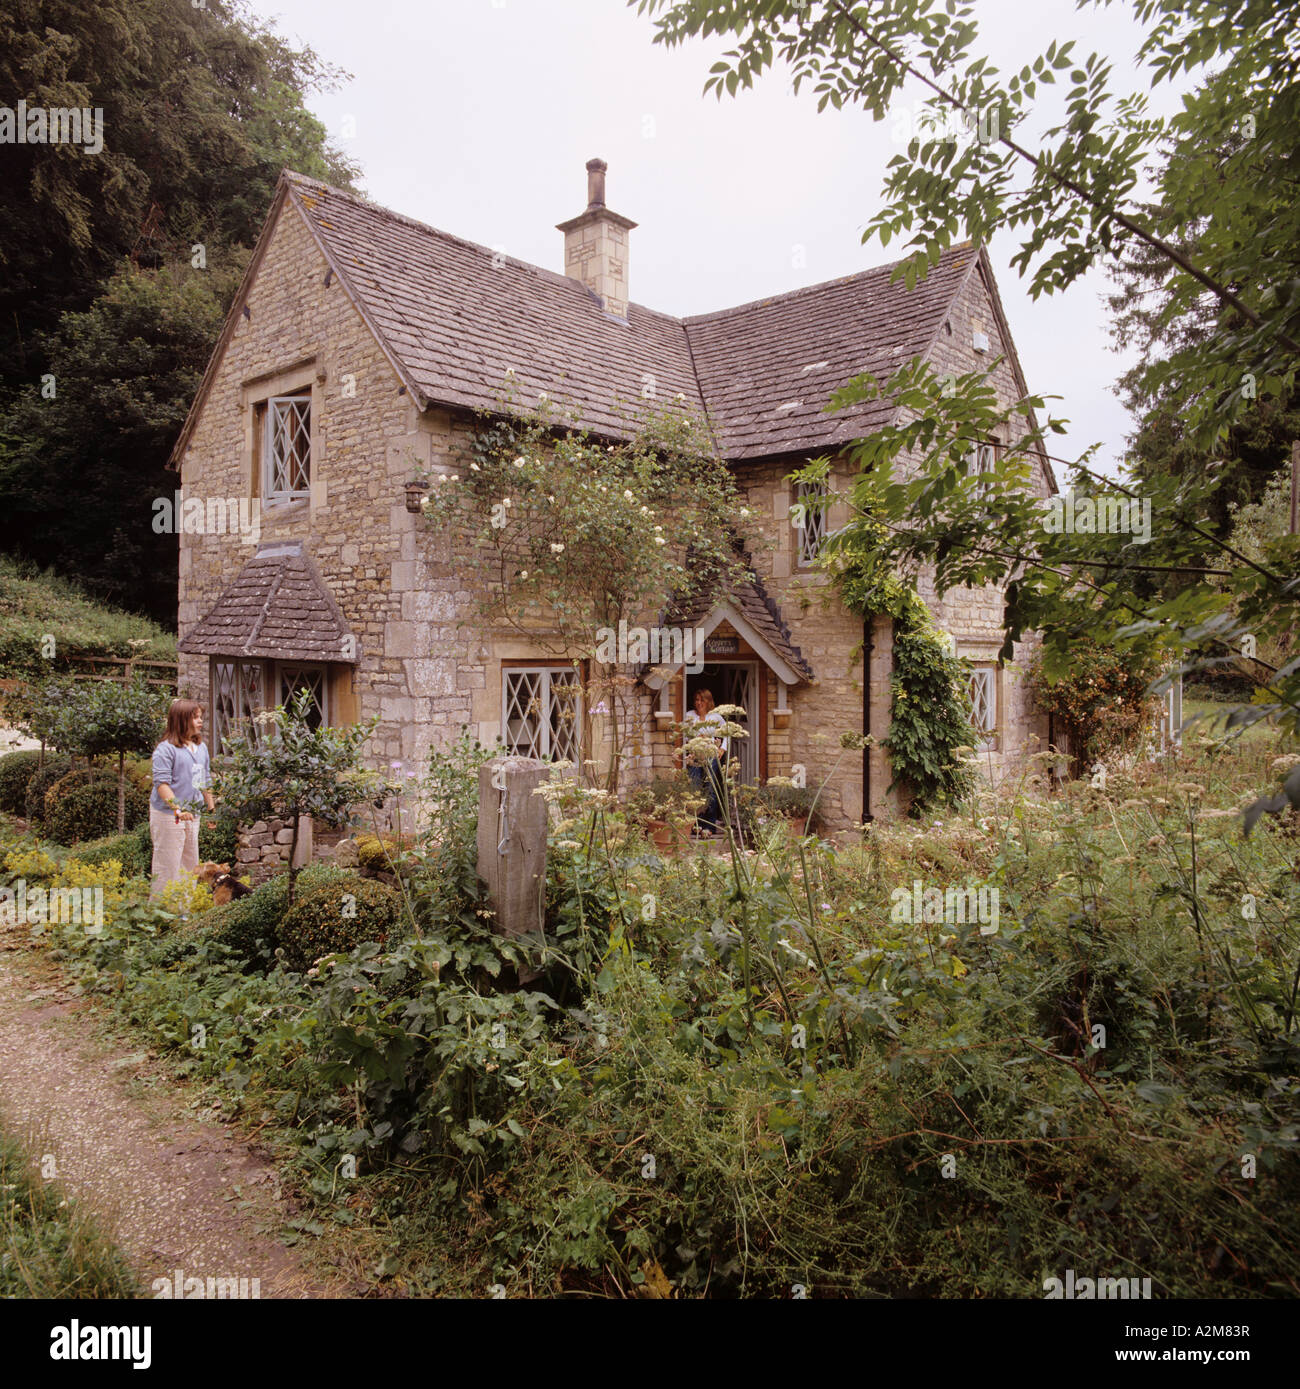 Country cottage and overgrown garden in Gloucestershire - Stock Image